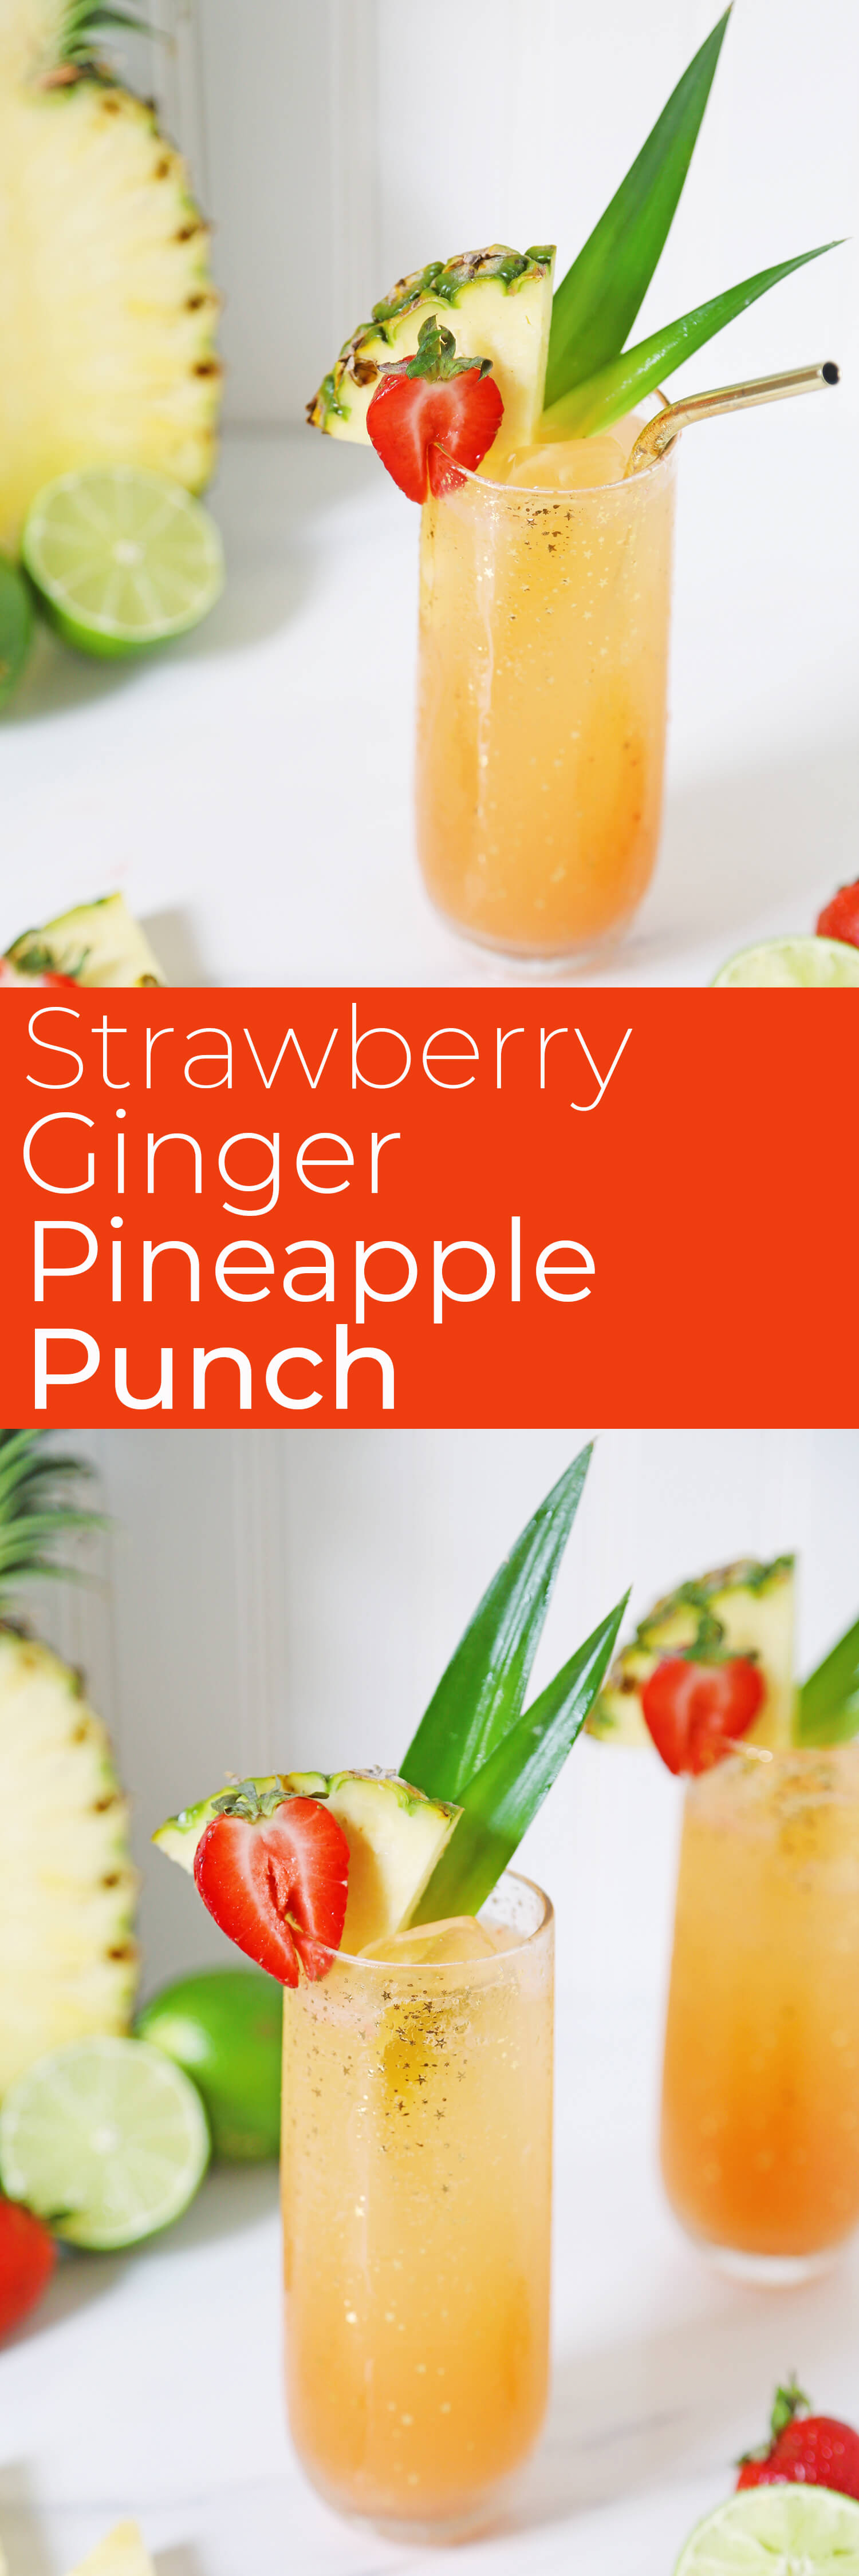 Strawberry Ginger Pineapple Punch